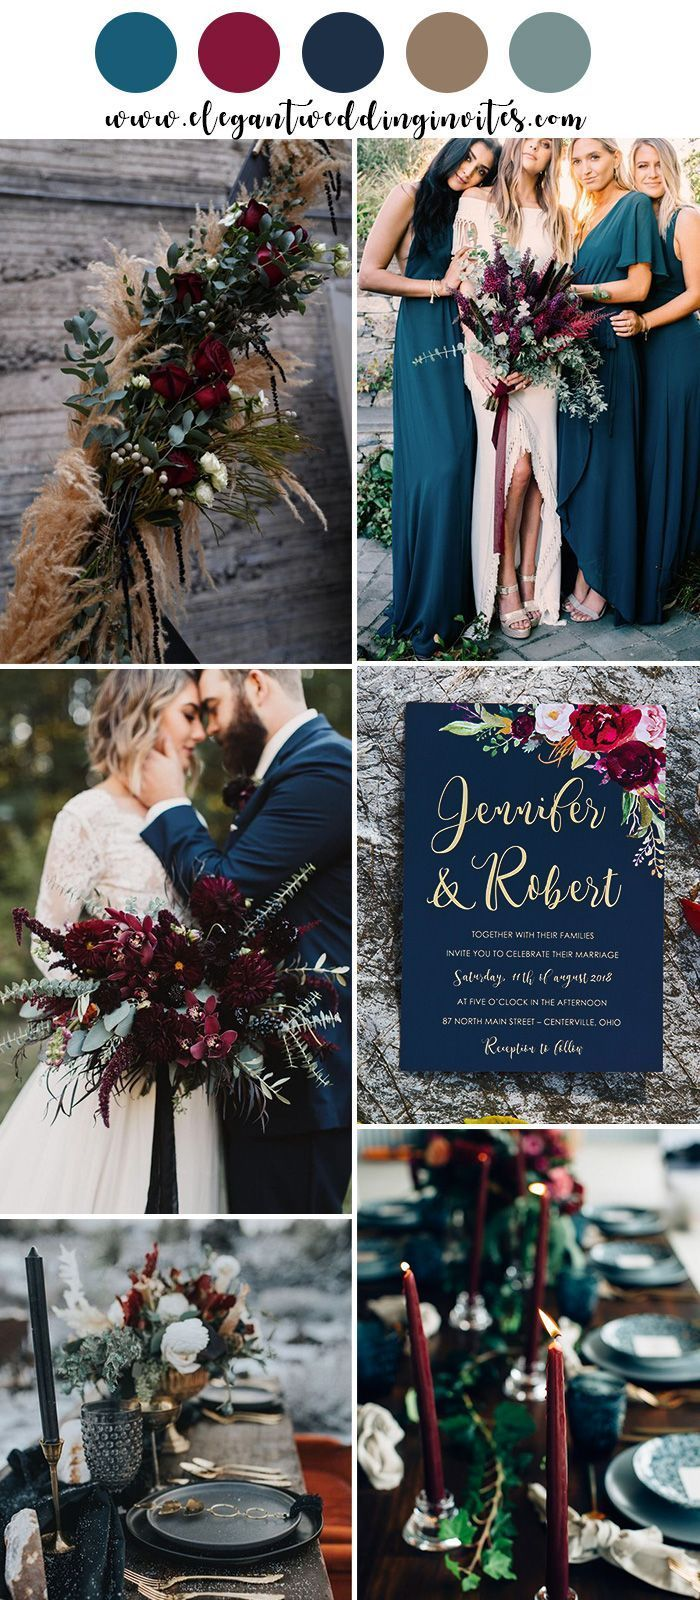 Photo of Tono joya boho inspirado bosque otoño colores de la boda #weddingplanning tono joya …